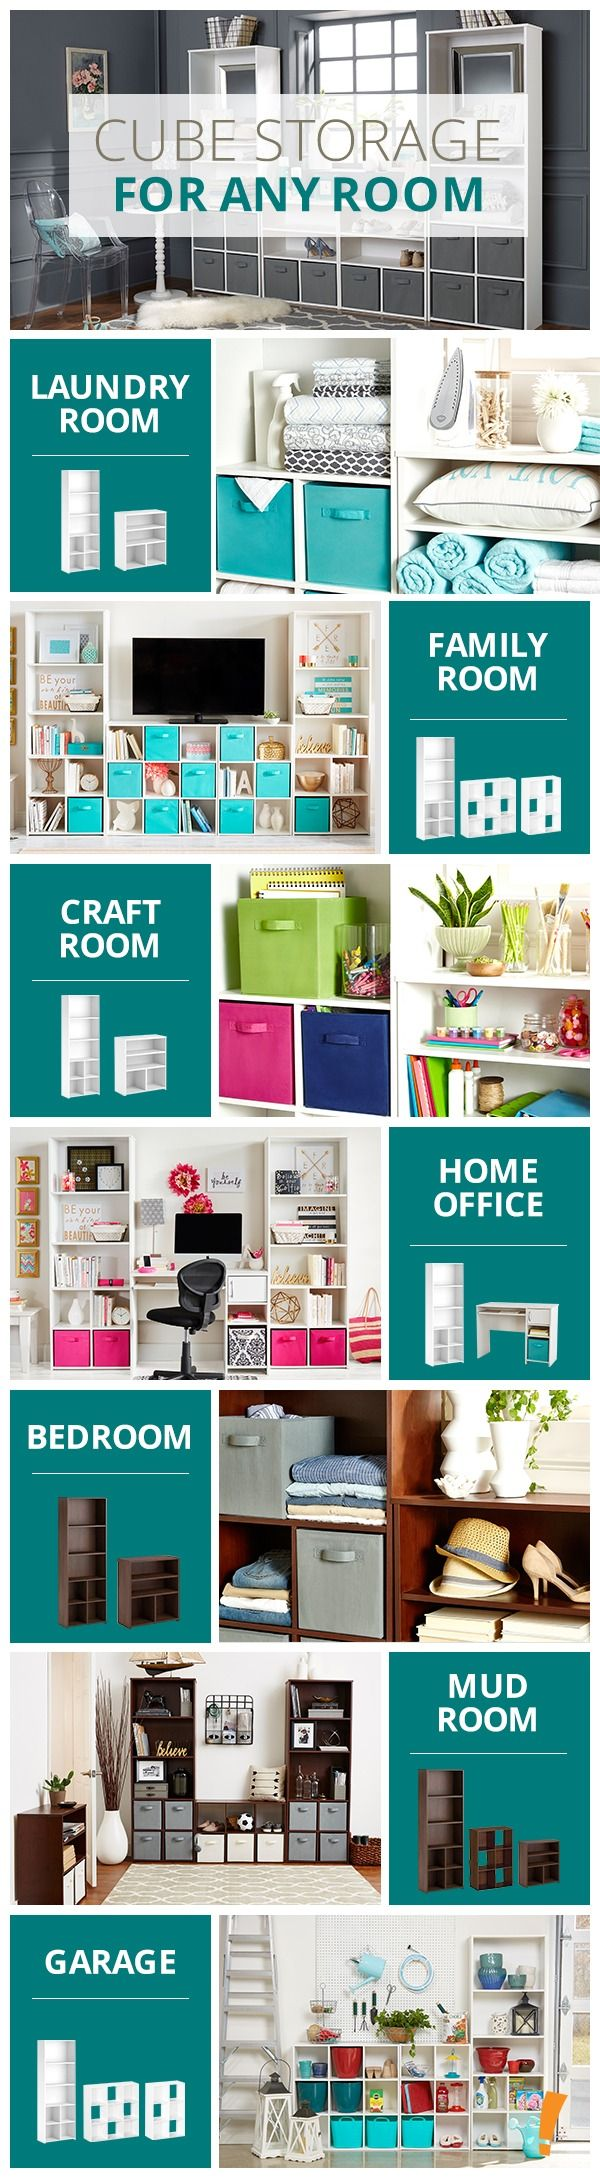 Organize any space with cube storage systems - craft room. laundry room. closet.